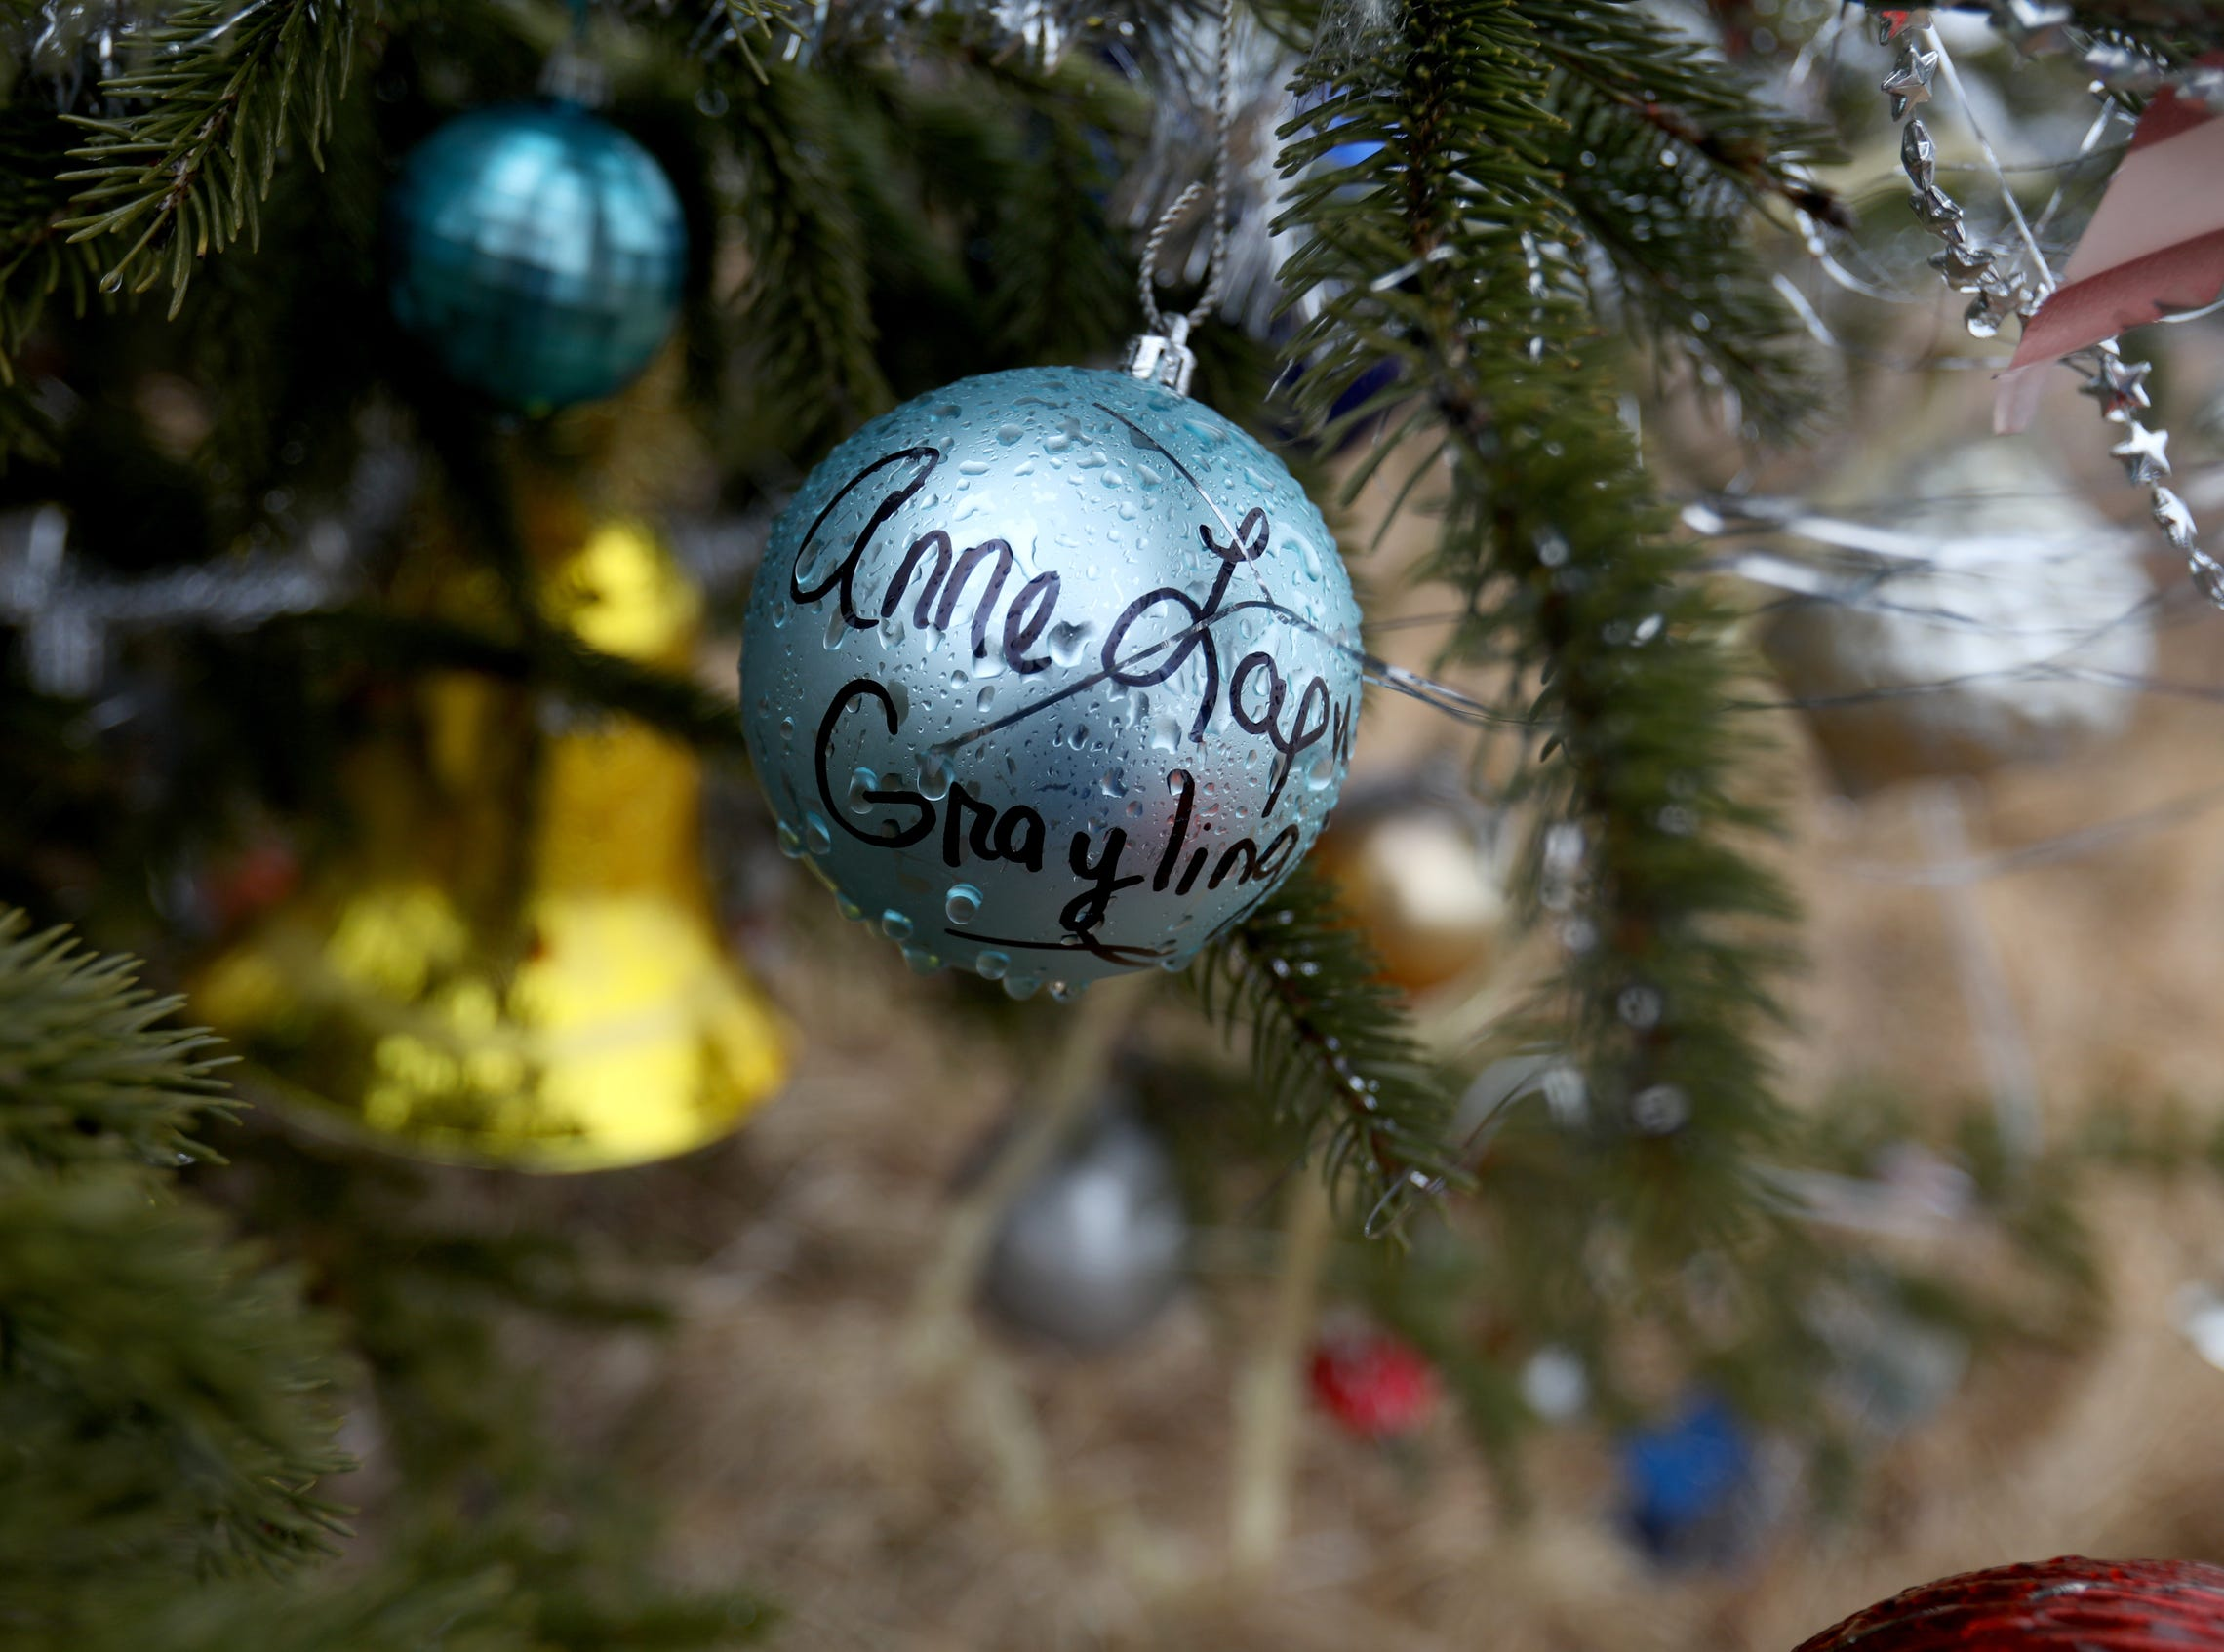 One of the many Christmas ornaments left behind by visitors.